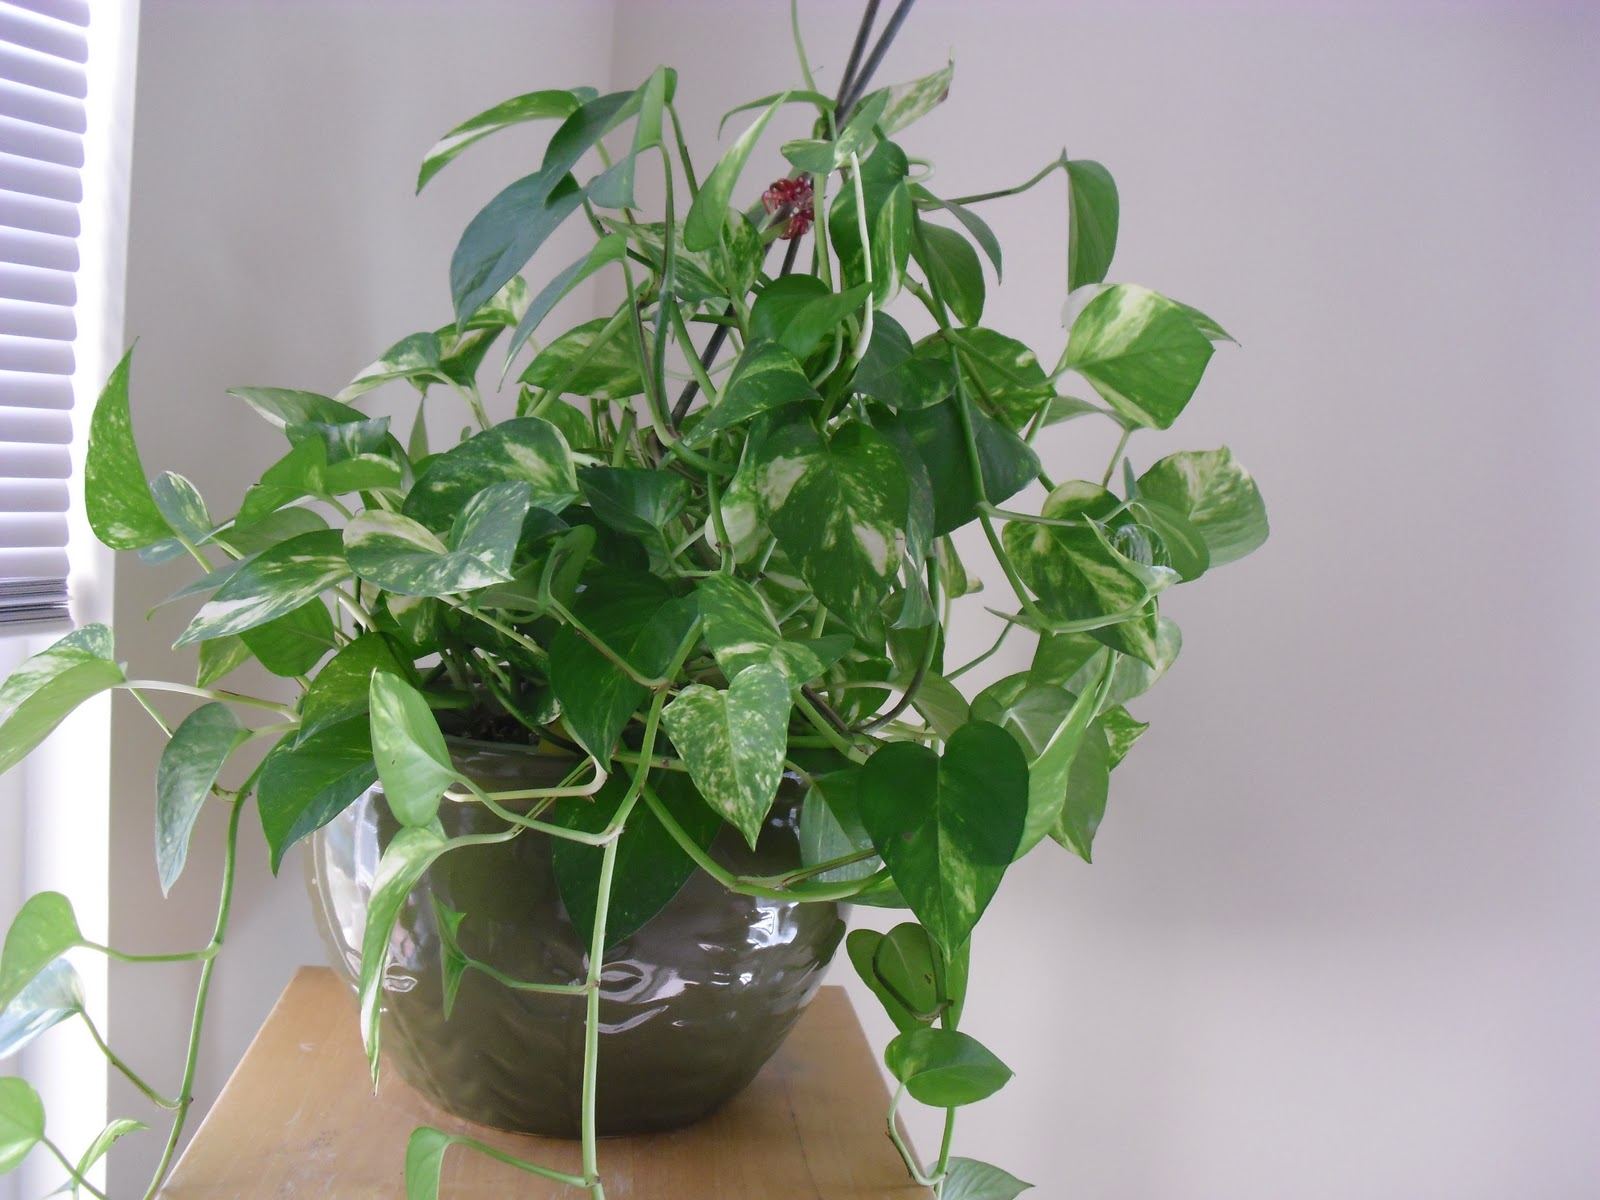 Dia 39 s garden style march 2011 - Five indoor plants that absorb humidity ...